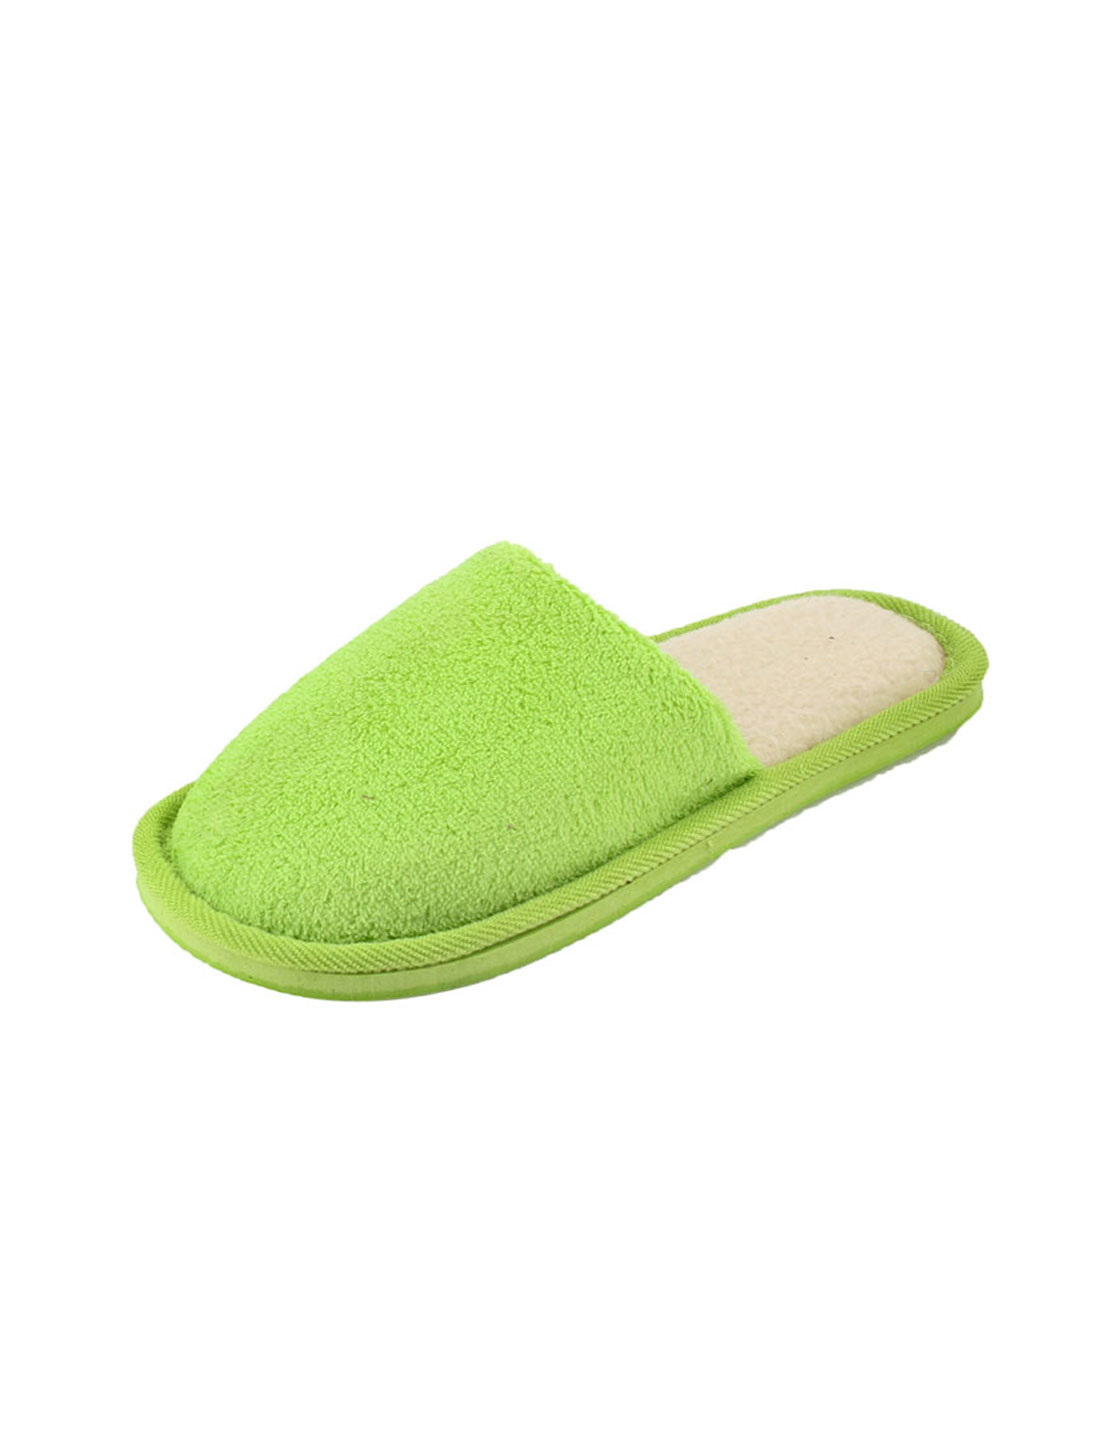 Light Green Slip On Fleece Lining Plush Warm Slippers Shoes US Size 9 Pair